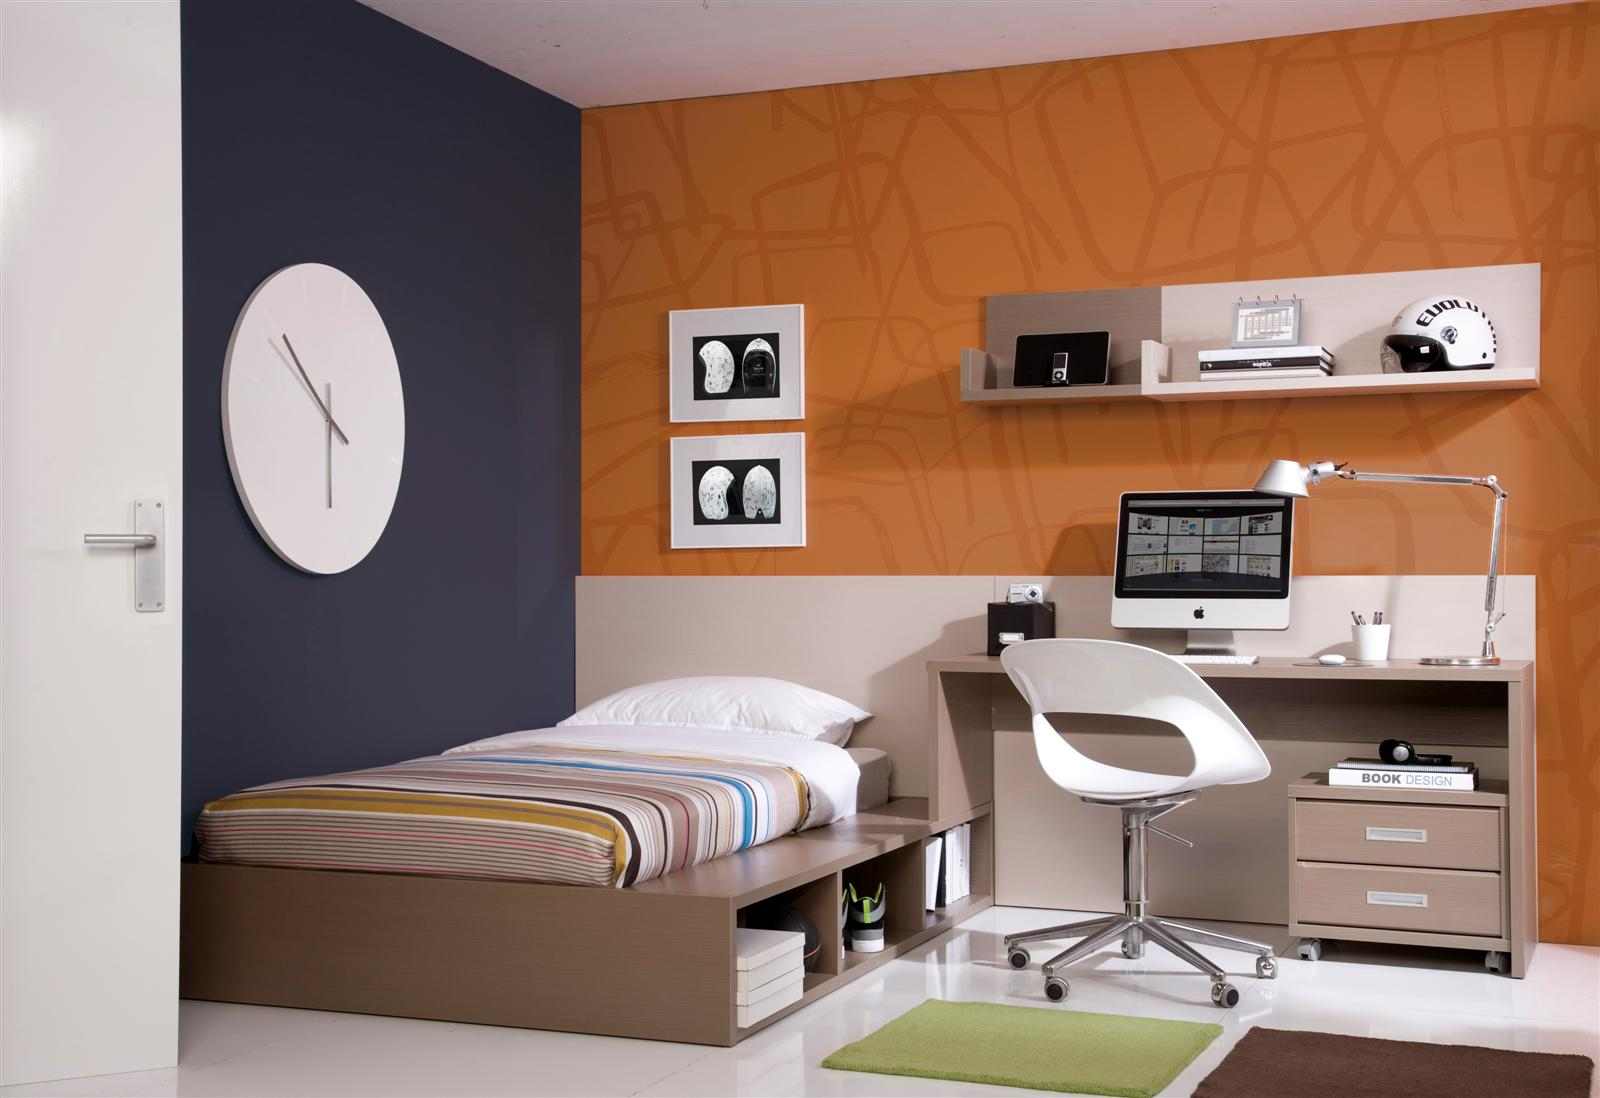 Psicolog a del color para decorar habitaciones infantiles for Dormitorio hombre